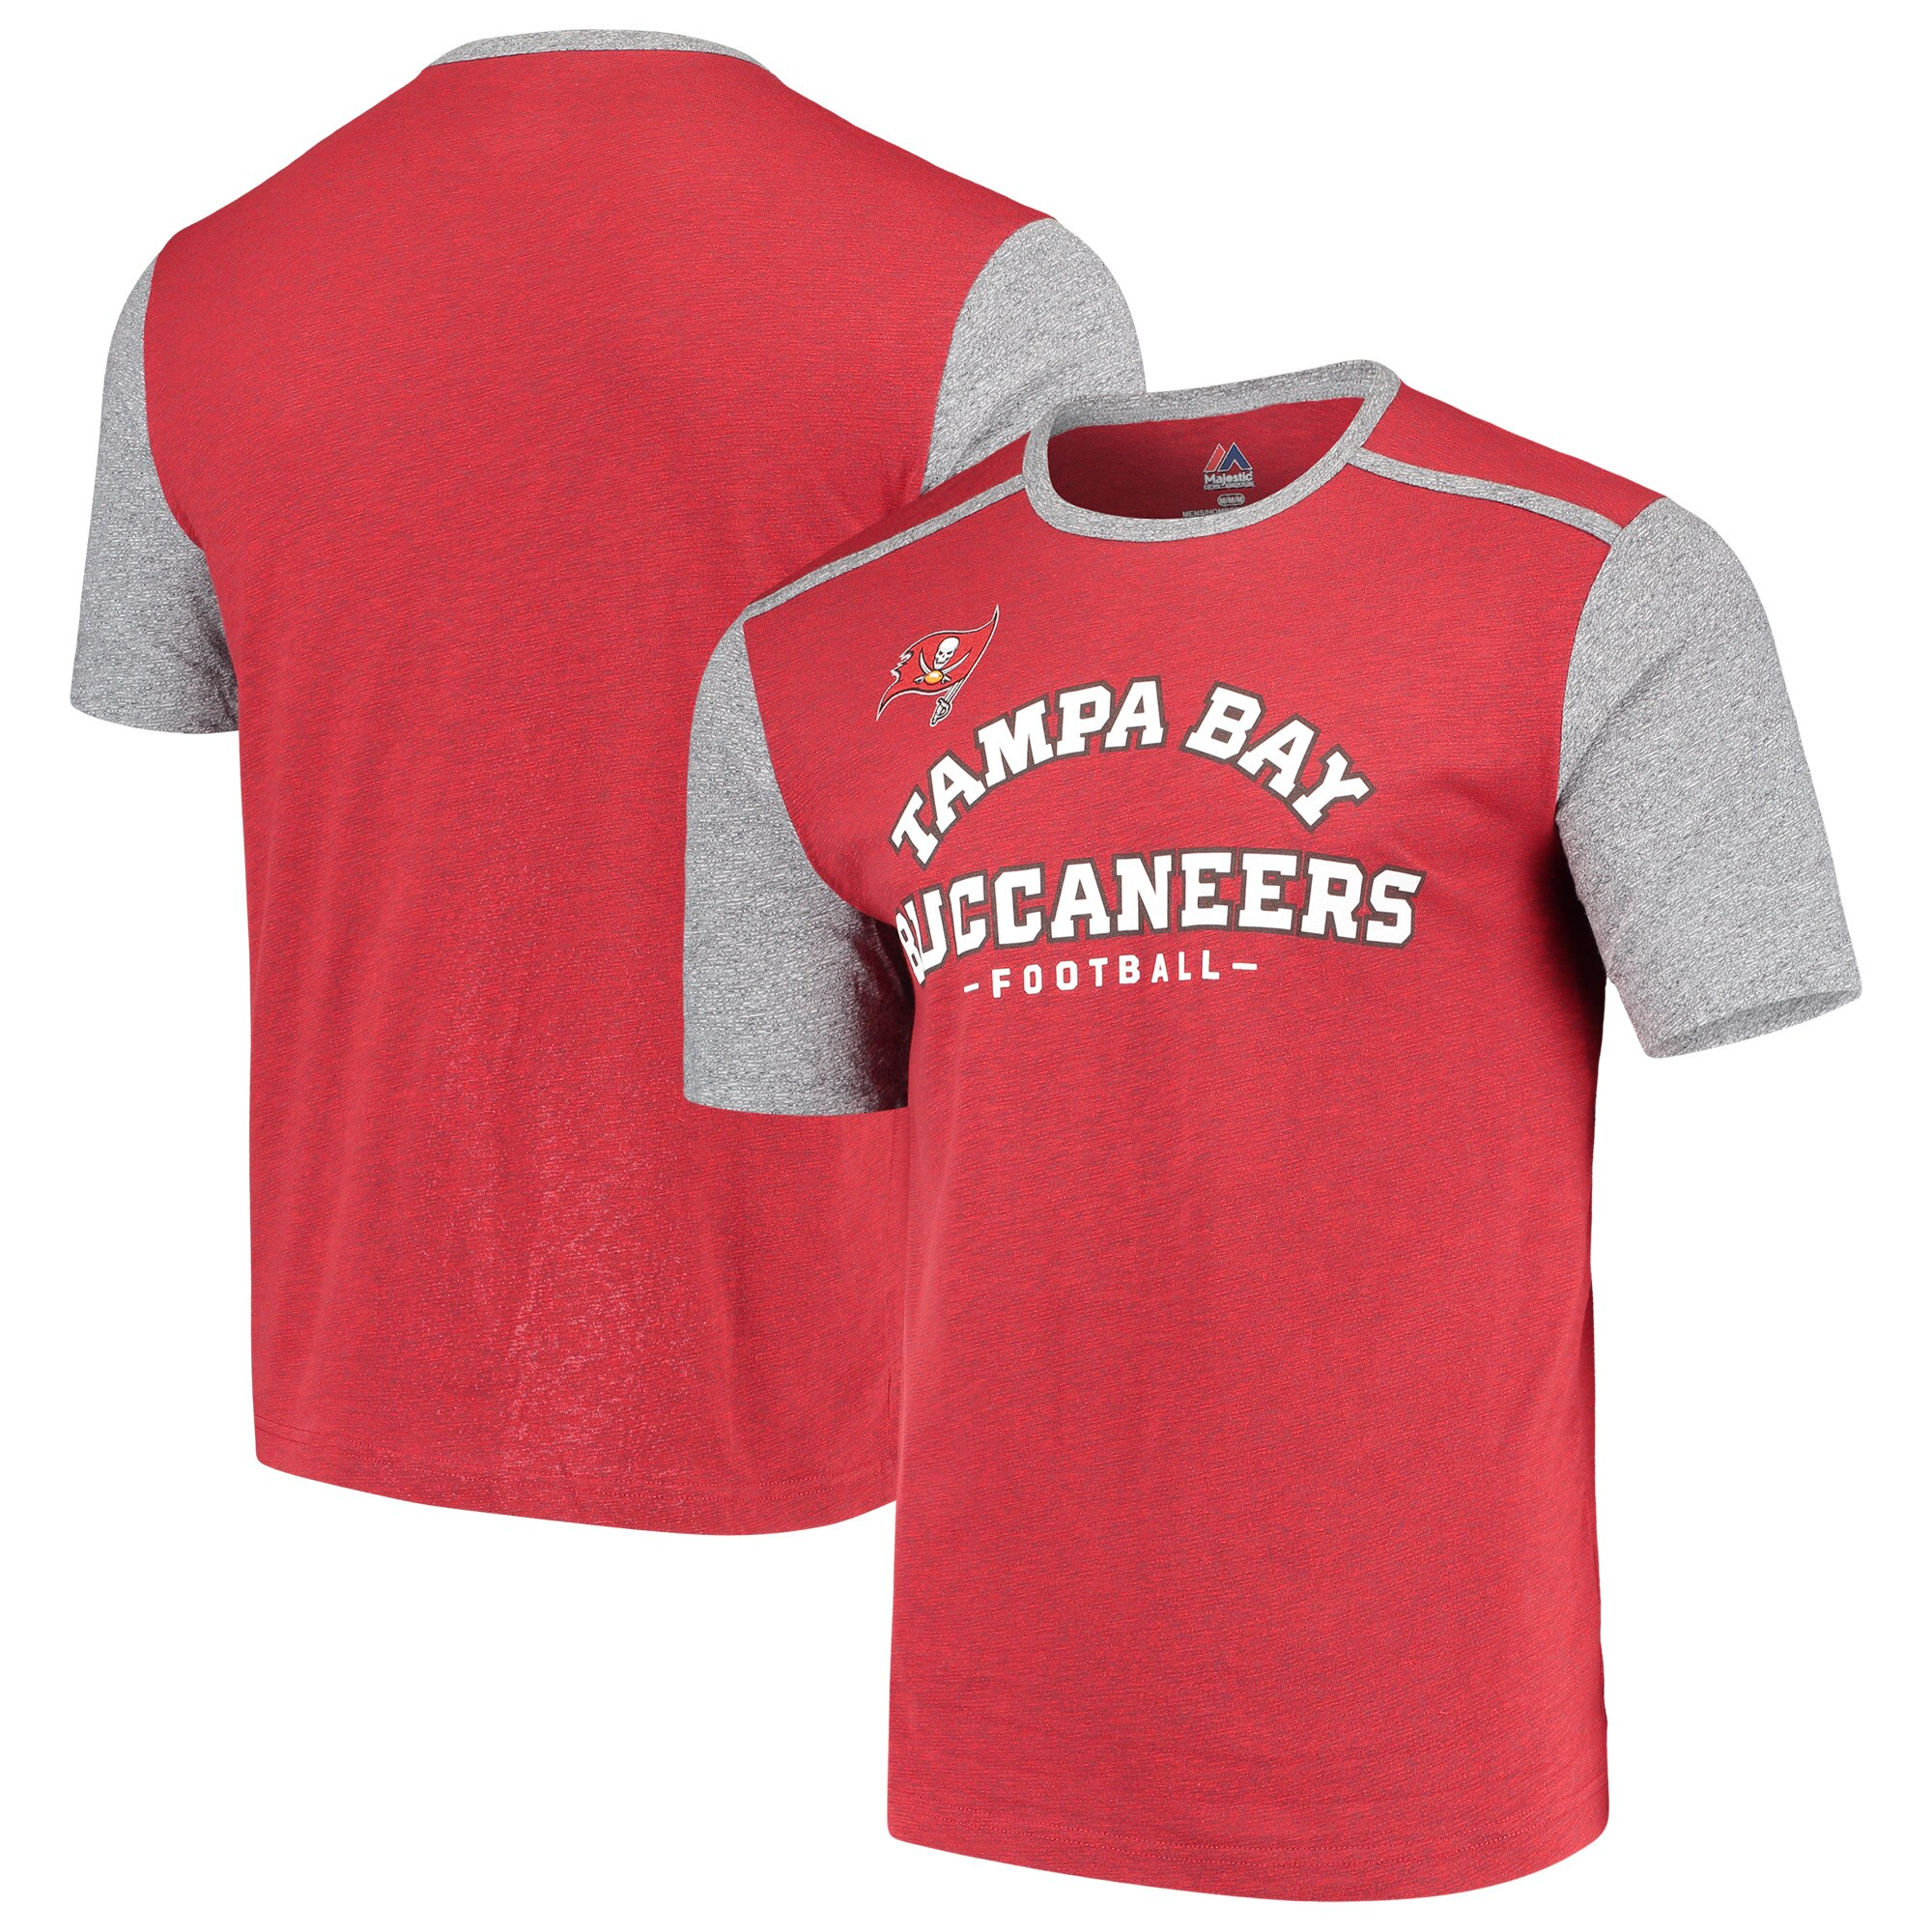 Tampa Bay Buccaneers Majestic Aim for the Sky T-Shirt - Red/Gray